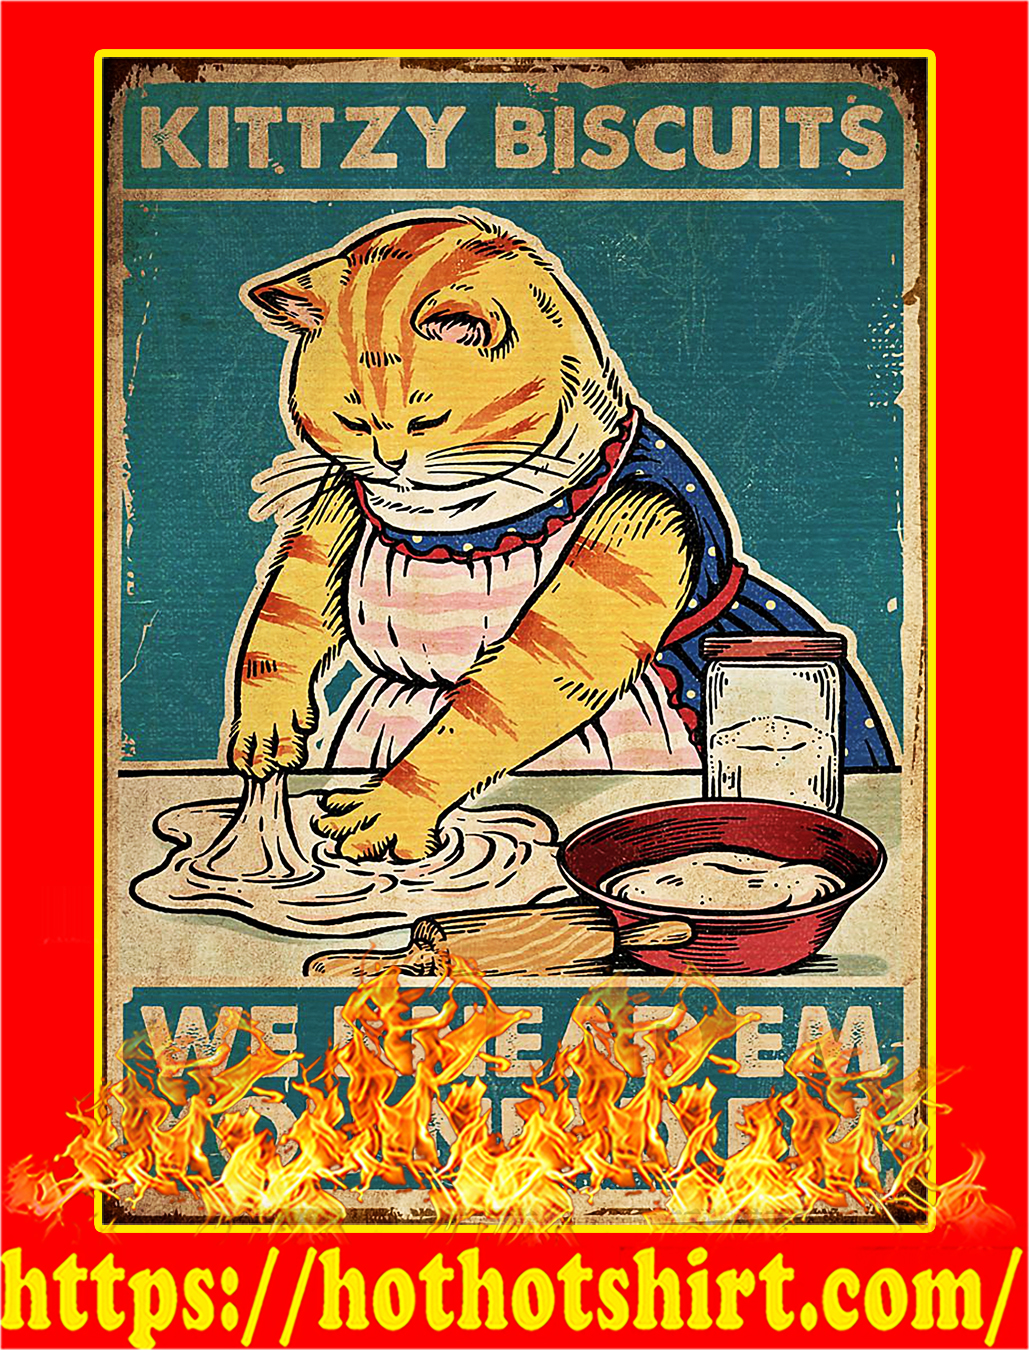 Cat kittzy biscuits we knead em you need em poster - A4